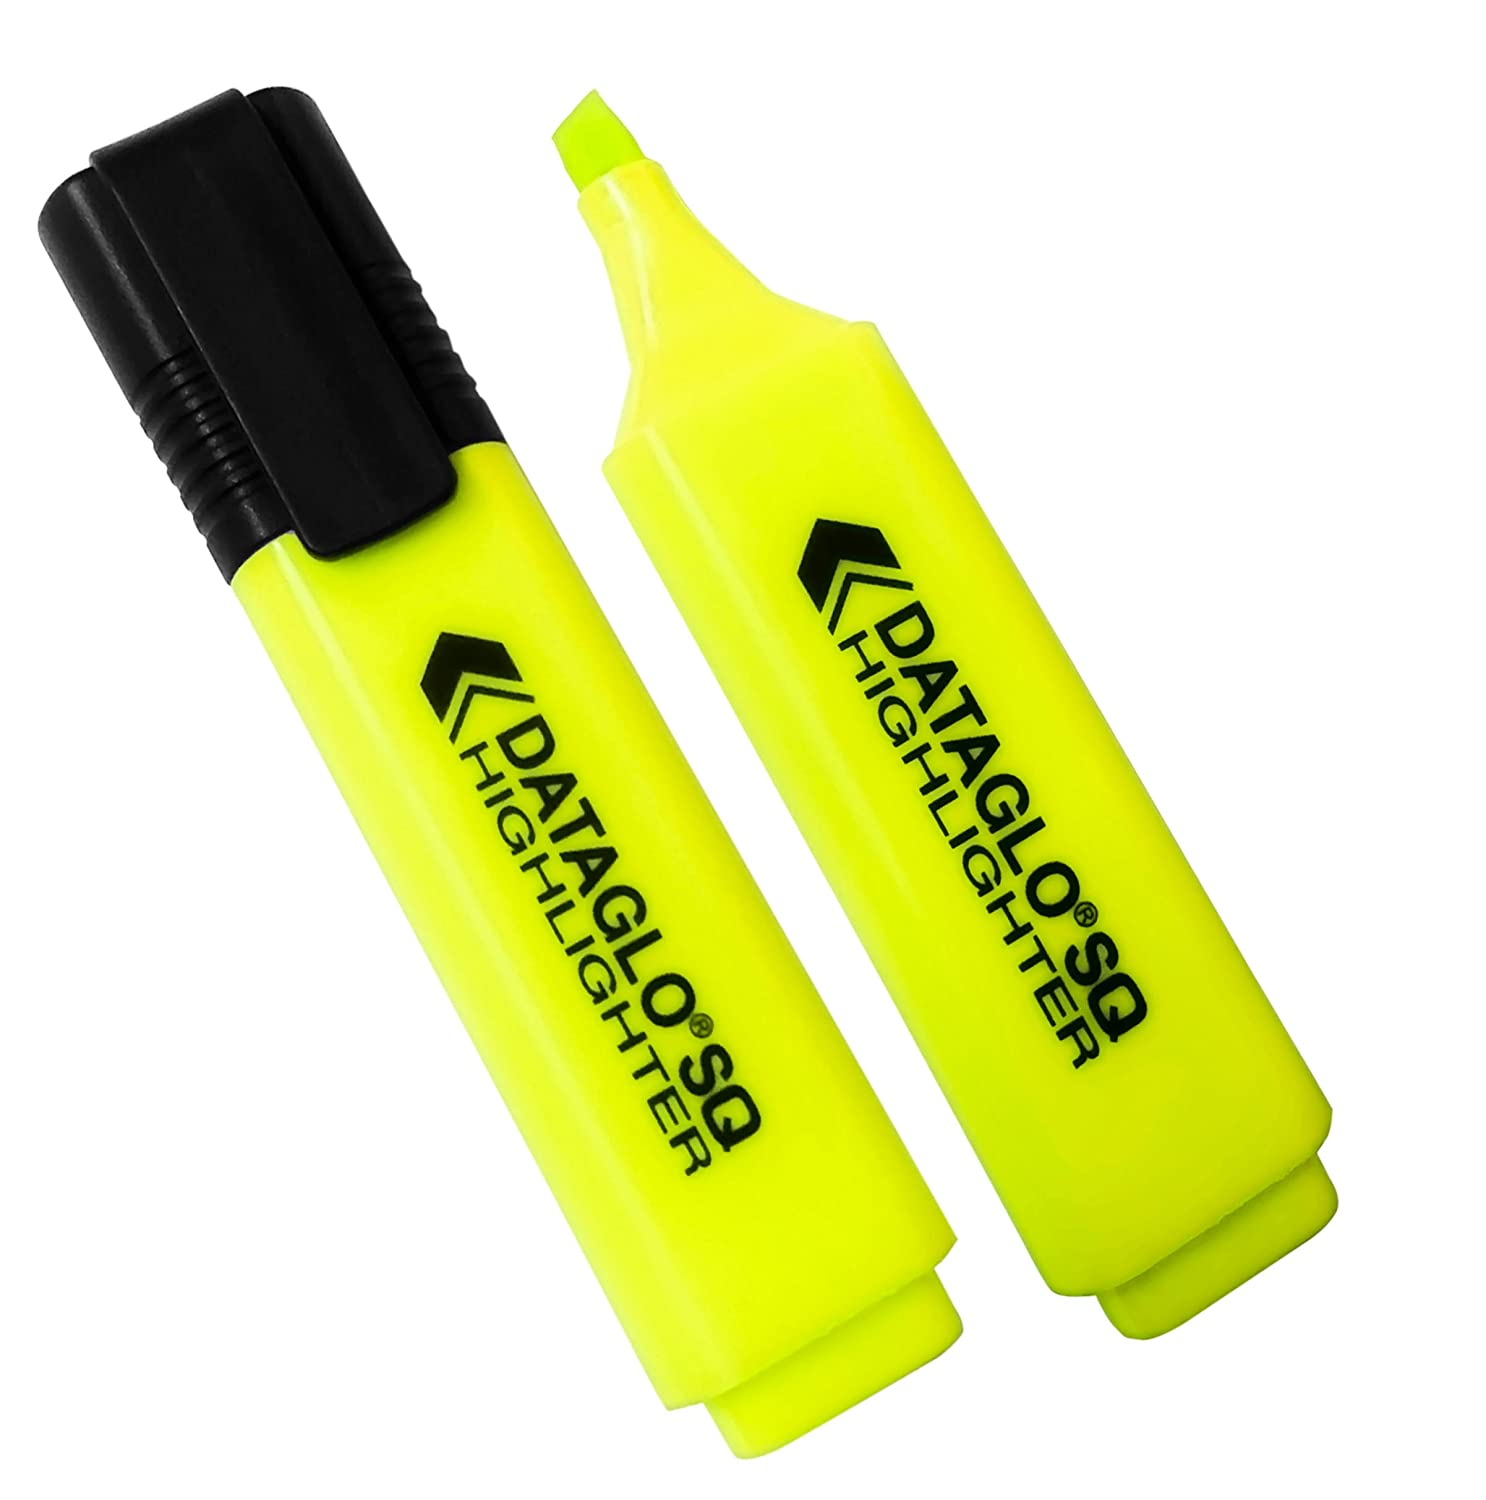 10x Yellow Dataglo SQ Chisel Tip Highlighters. Classpack - Pack of 10. Neon/Fluorescent Yellow Revision Highlighter Pens.